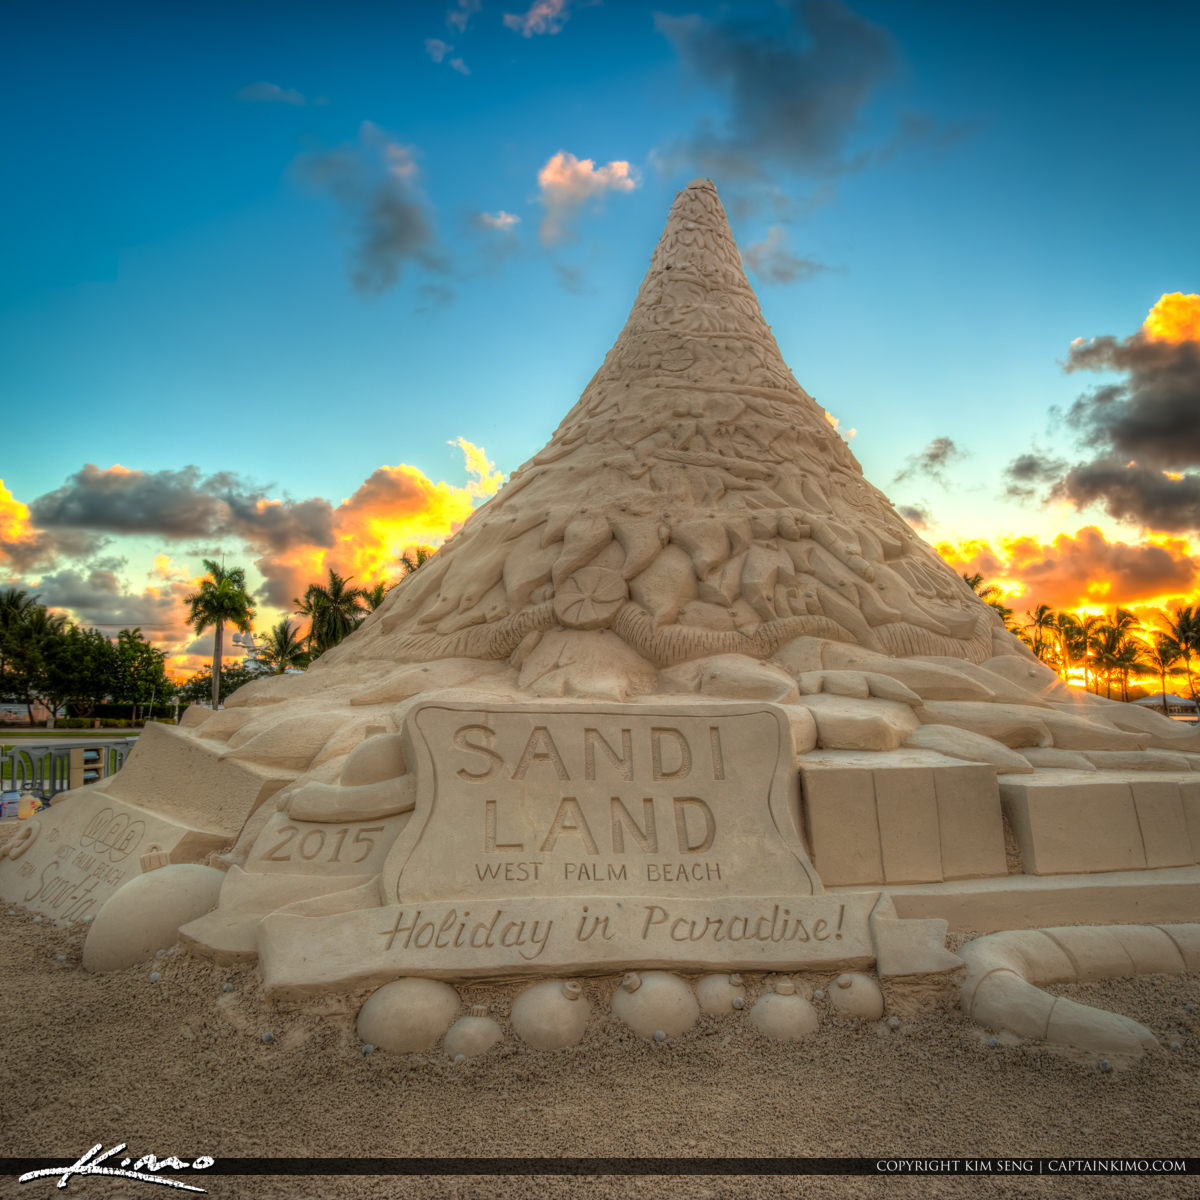 Sandi Christmas Tree Sand Castle West Palm Beach 2015